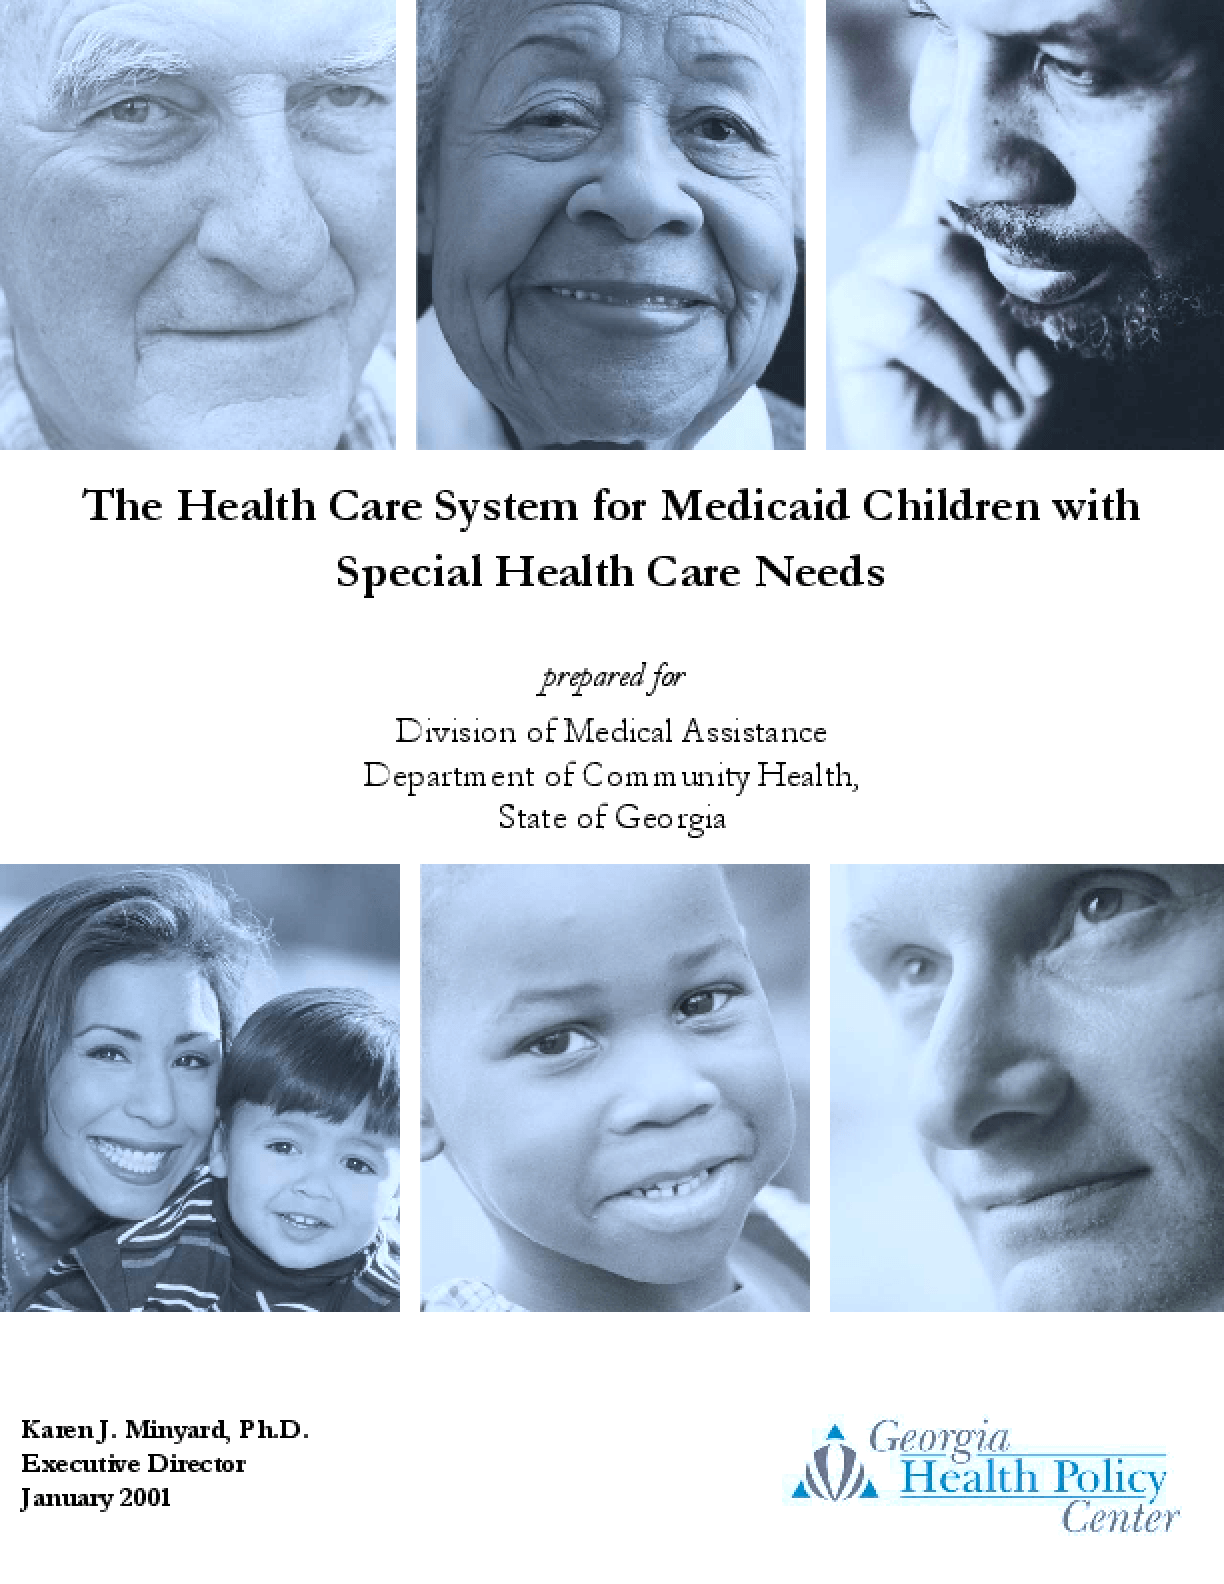 The Health Care System for Medicaid Children with Special Health Care Needs